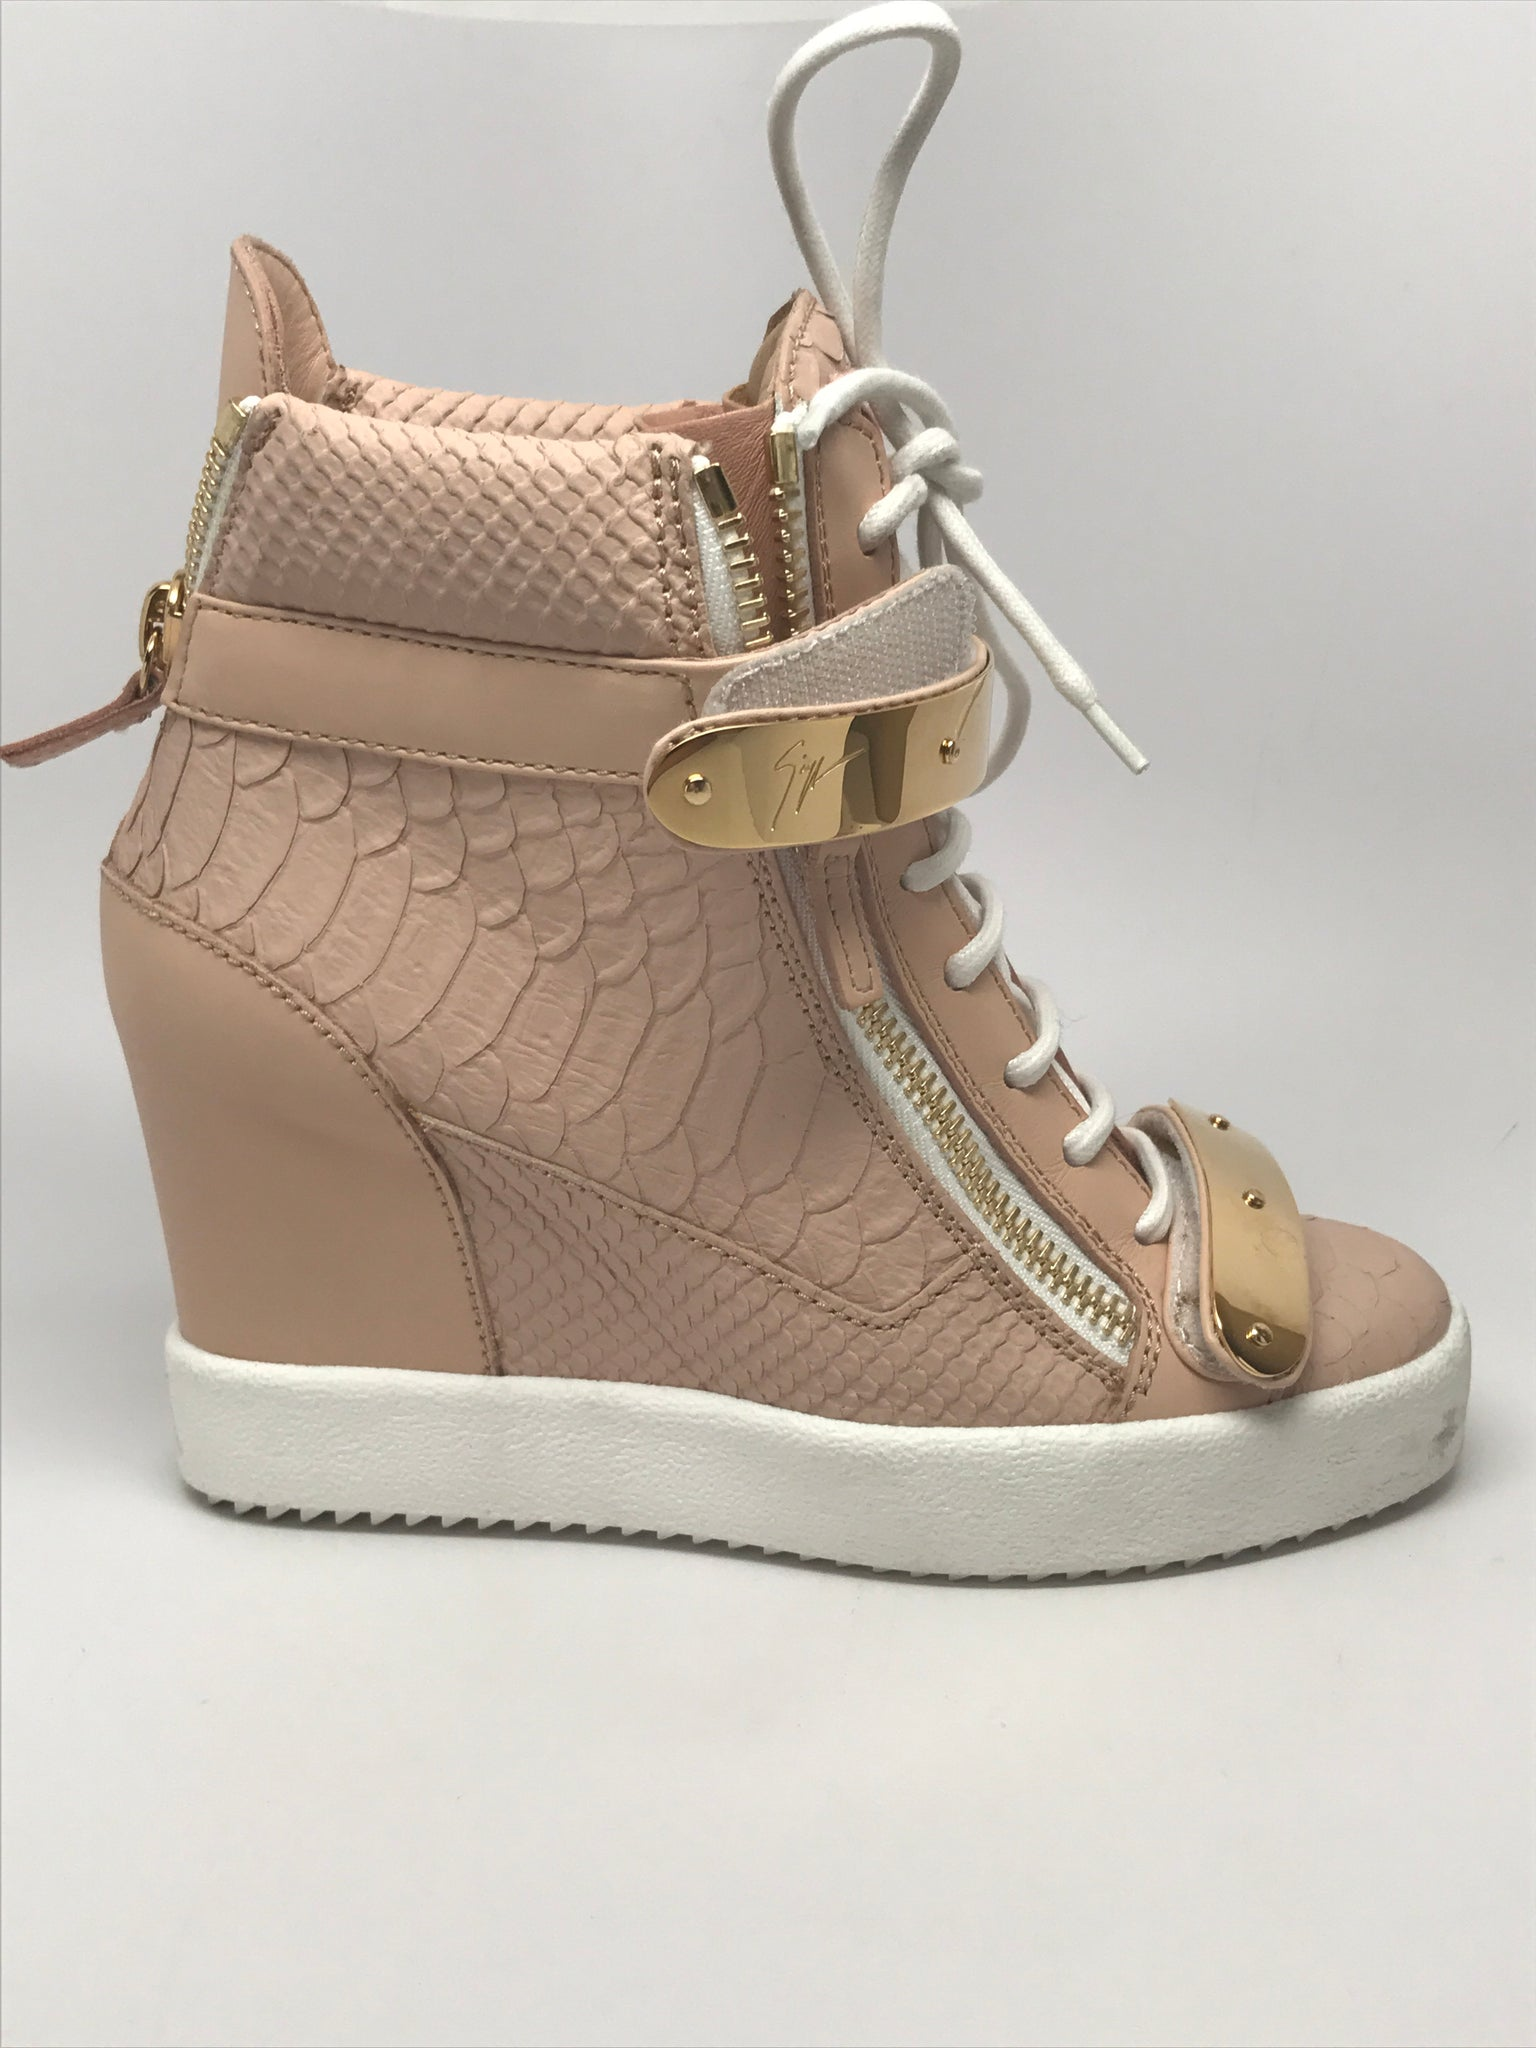 a332944a4cf02 GIUSEPPE ZANOTTI 'JENNIFER' EMBOSSED CROCODILE LEATHER WEDGE SNEAKER - SIZE  37